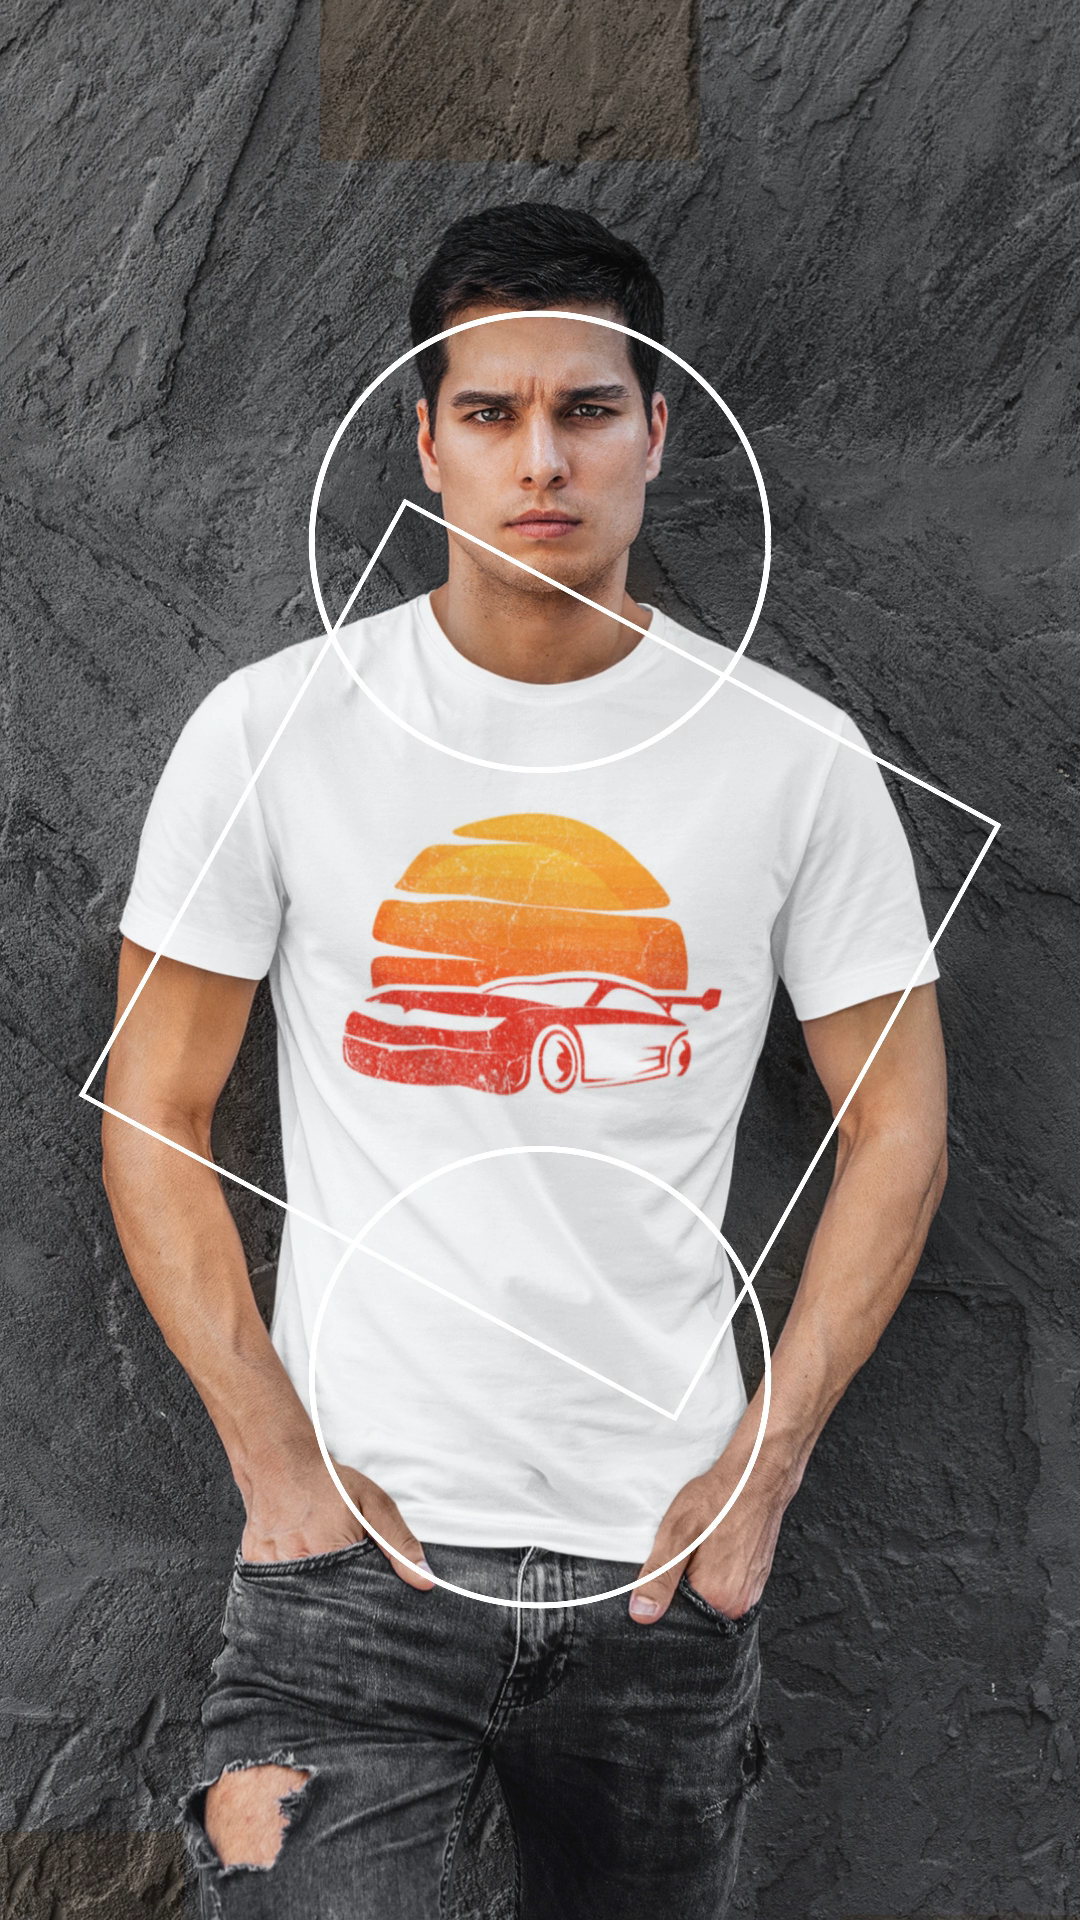 T-Shirt Cars Fan Racing Driver American Muscle Car Speed Lover Tee